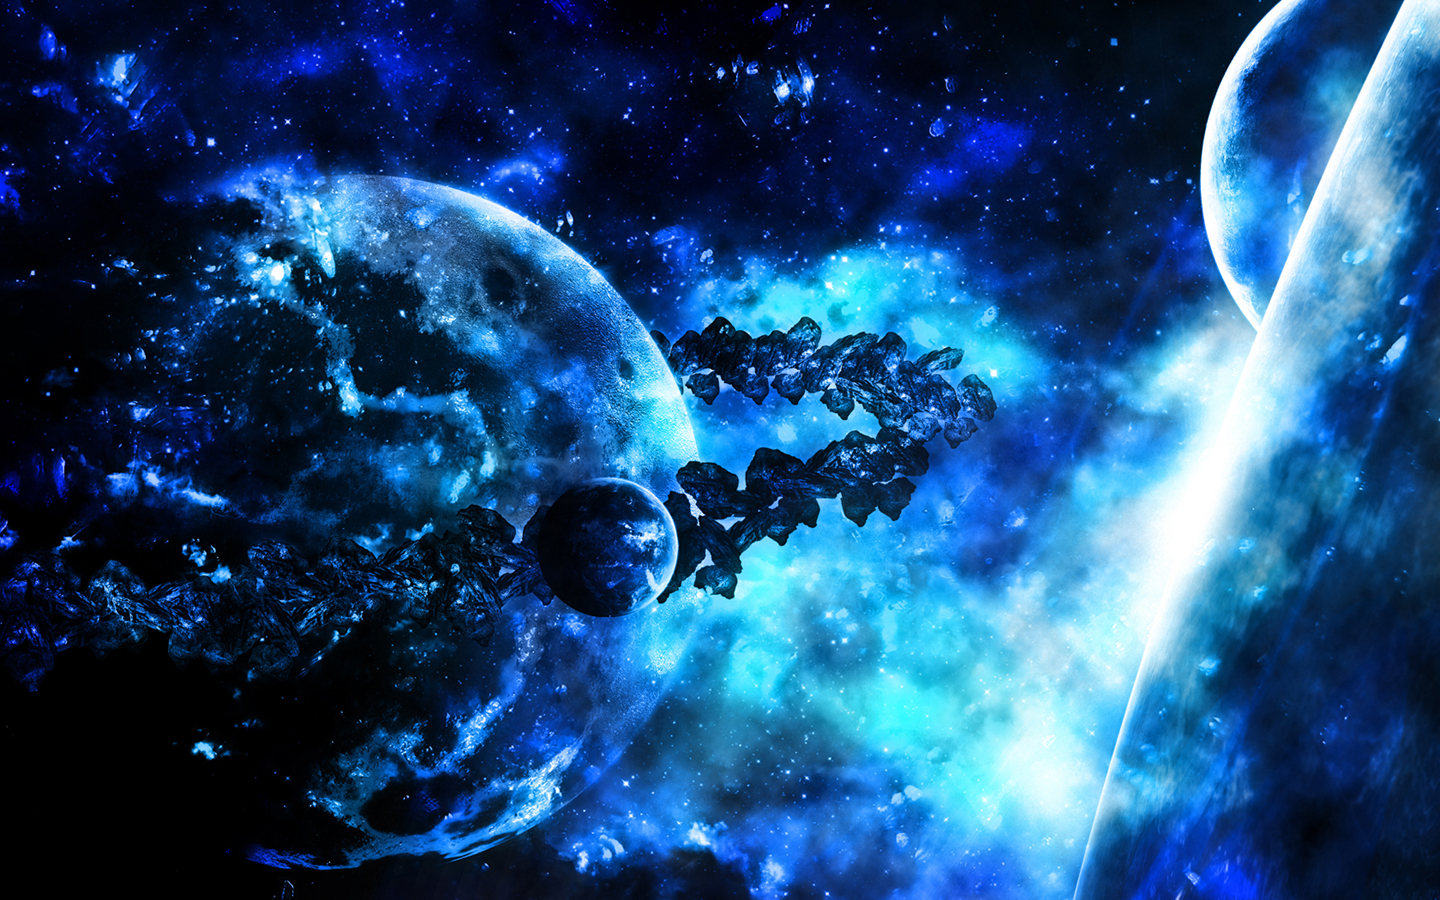 space desktop wallpaper backgrounds - photo #39